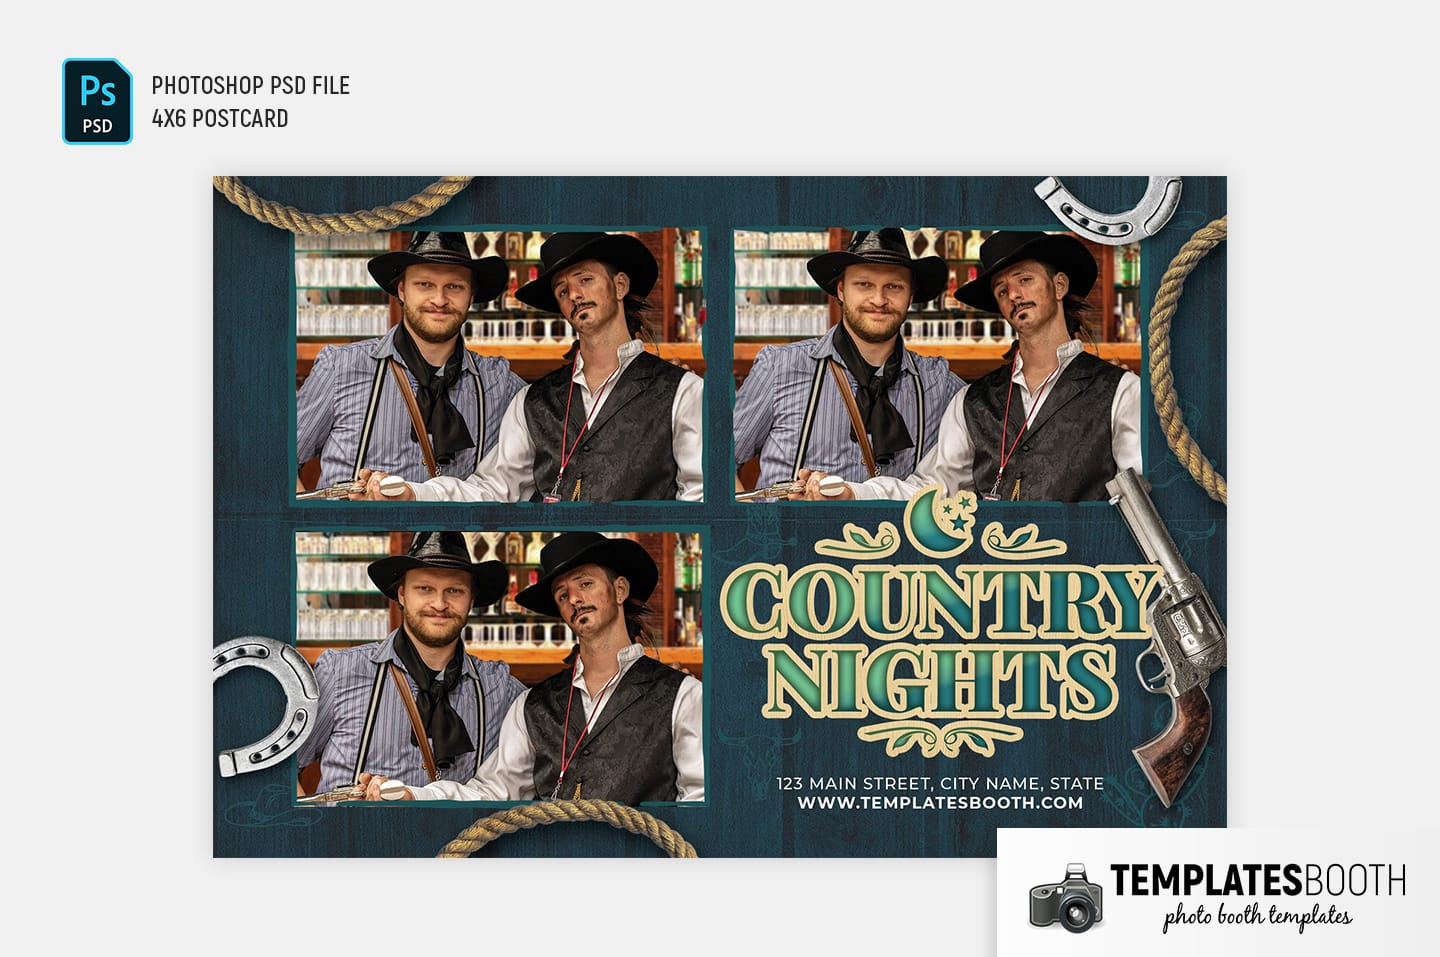 Country Nights Photo Booth Template (4x6 postcard landscape)